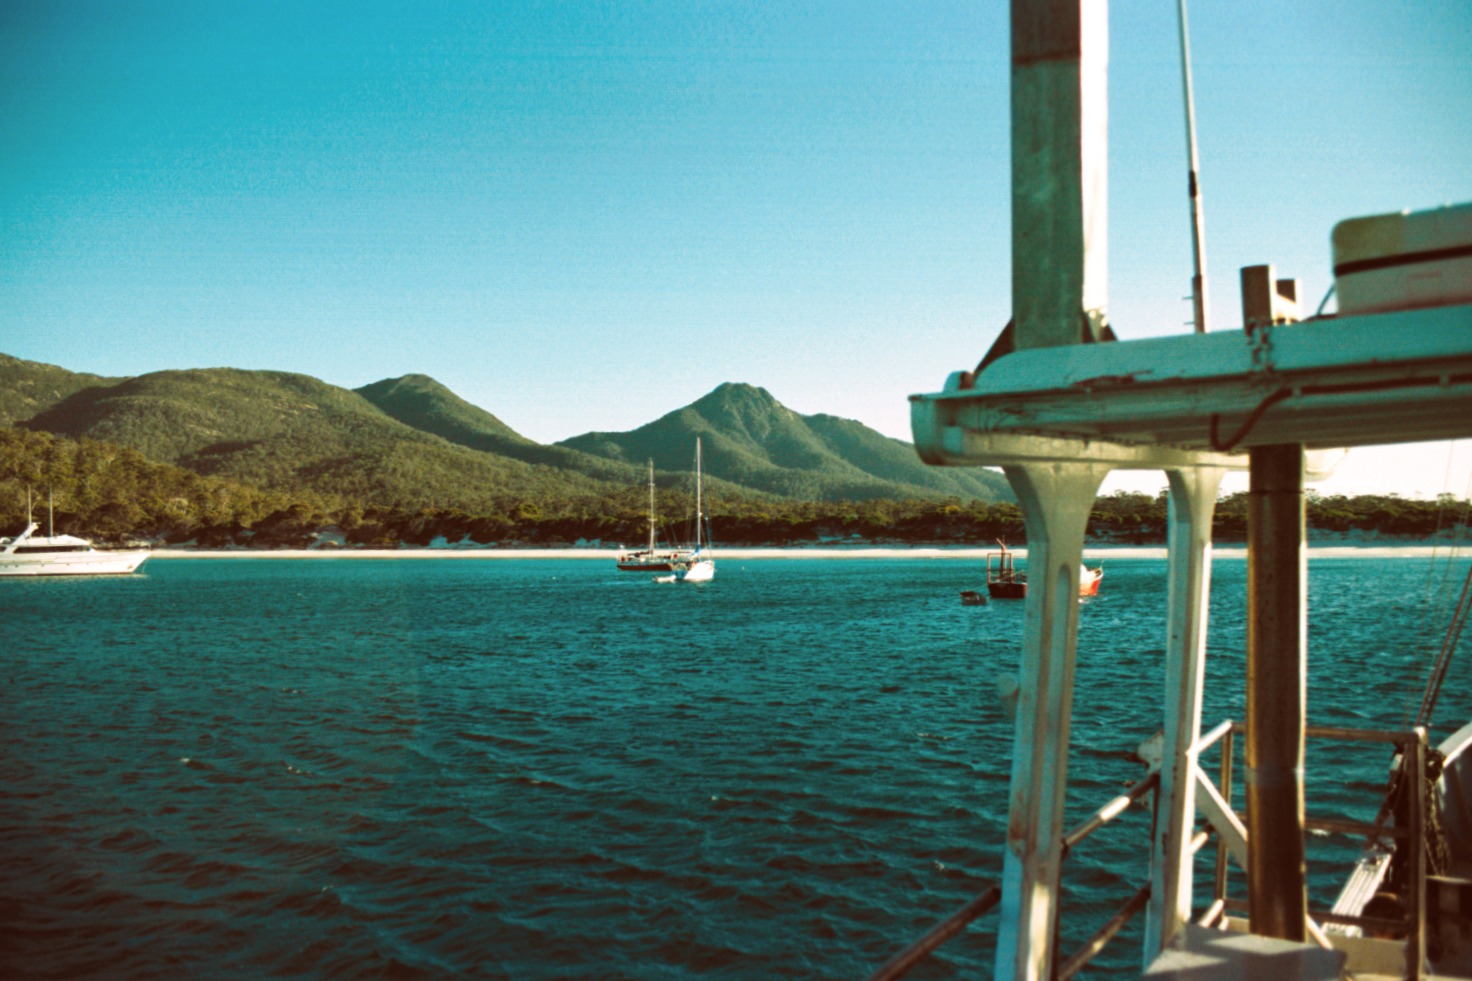 Boats at anchor in Wineglass Bay